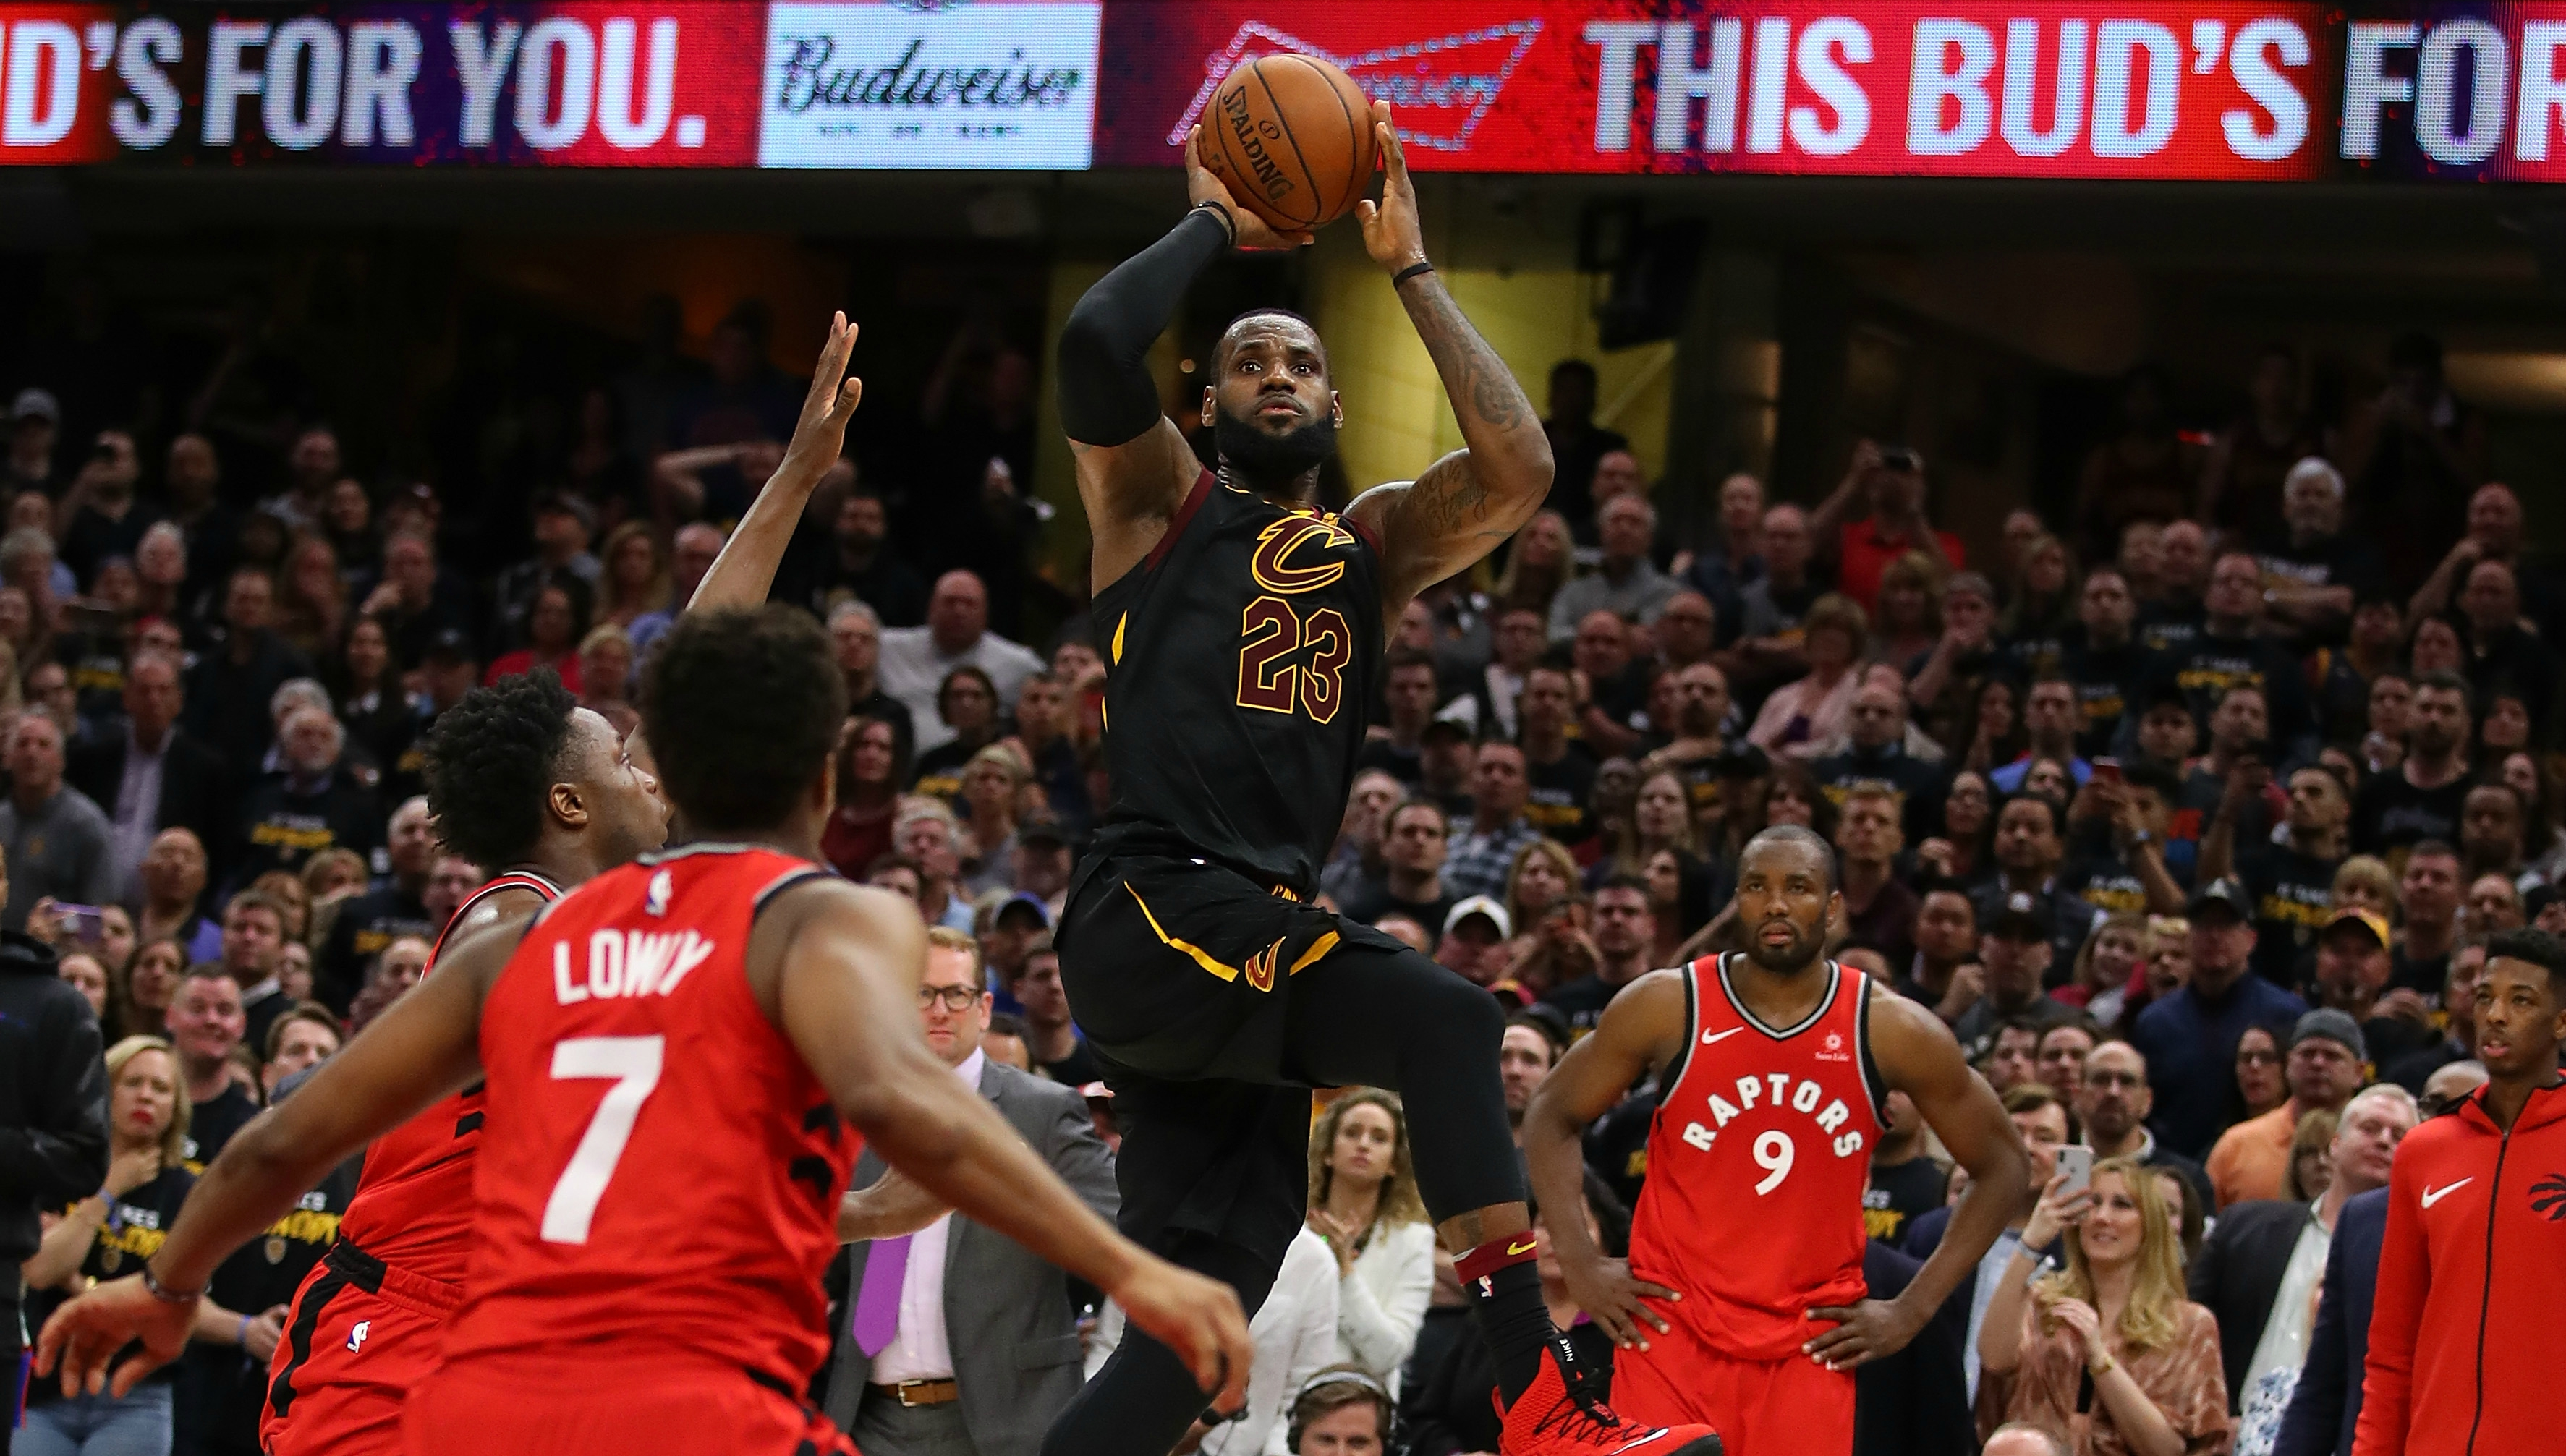 7c4f8d09263d LeBron James delivers another game-winner to crush Toronto Raptors  hopes